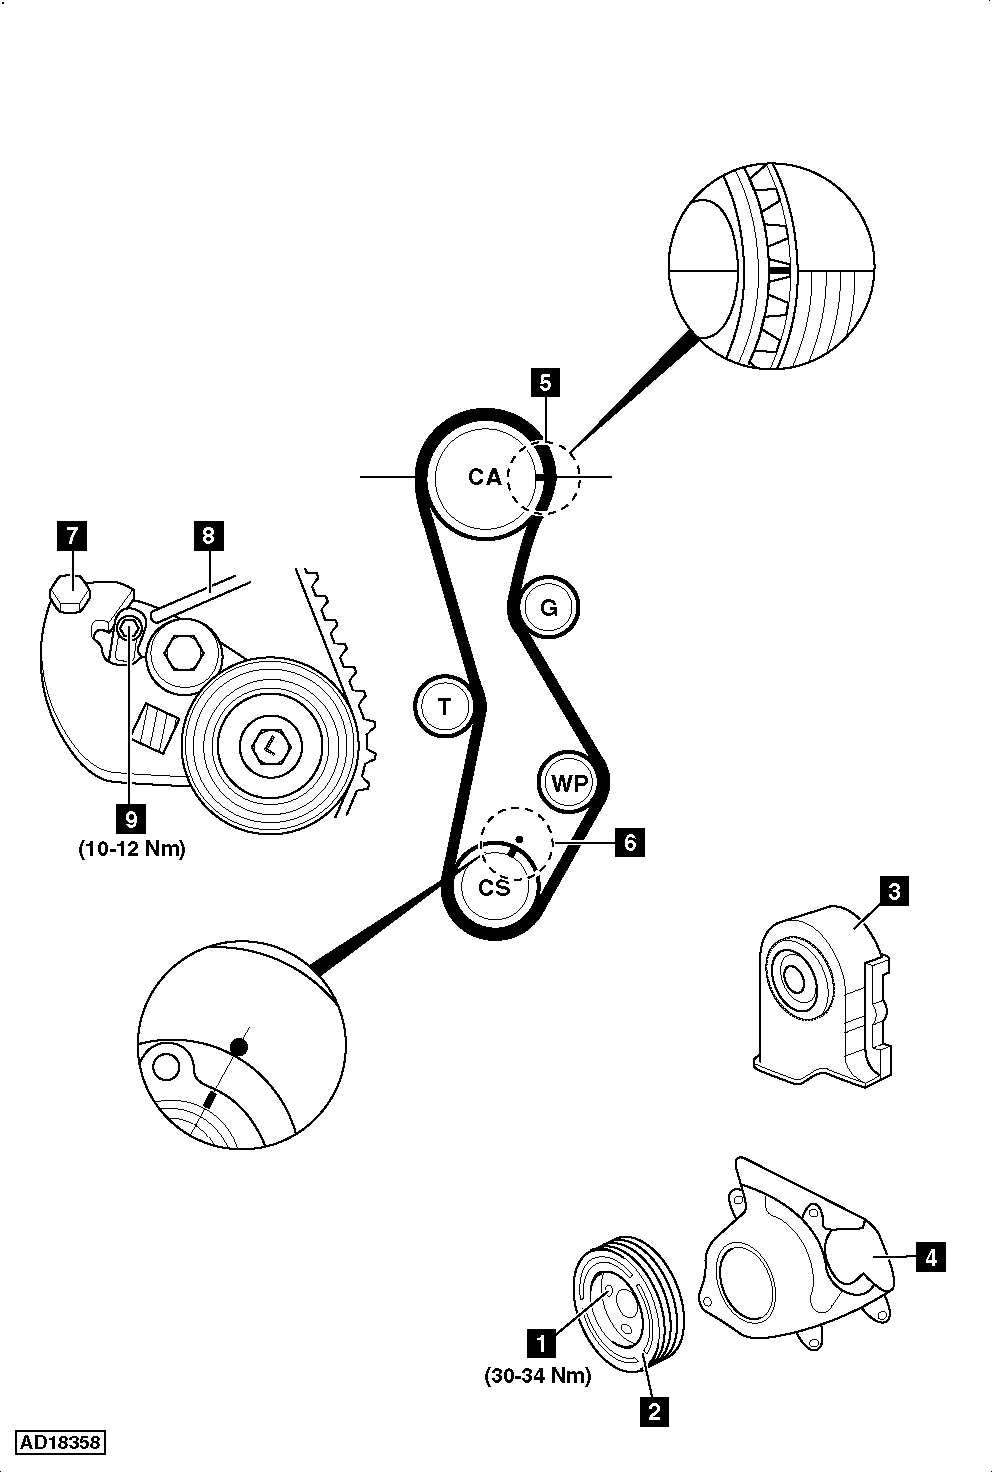 P 0996b43f80e6479e furthermore 2005 besides Dodge Intake Manifold Runner Control Valve Location besides 6xixj Hyundai Sonota Change Serpentine Belt Sonata also Chrysler 200 2 4 Liter Engine Diagram. on 2007 hyundai sonata timing belt